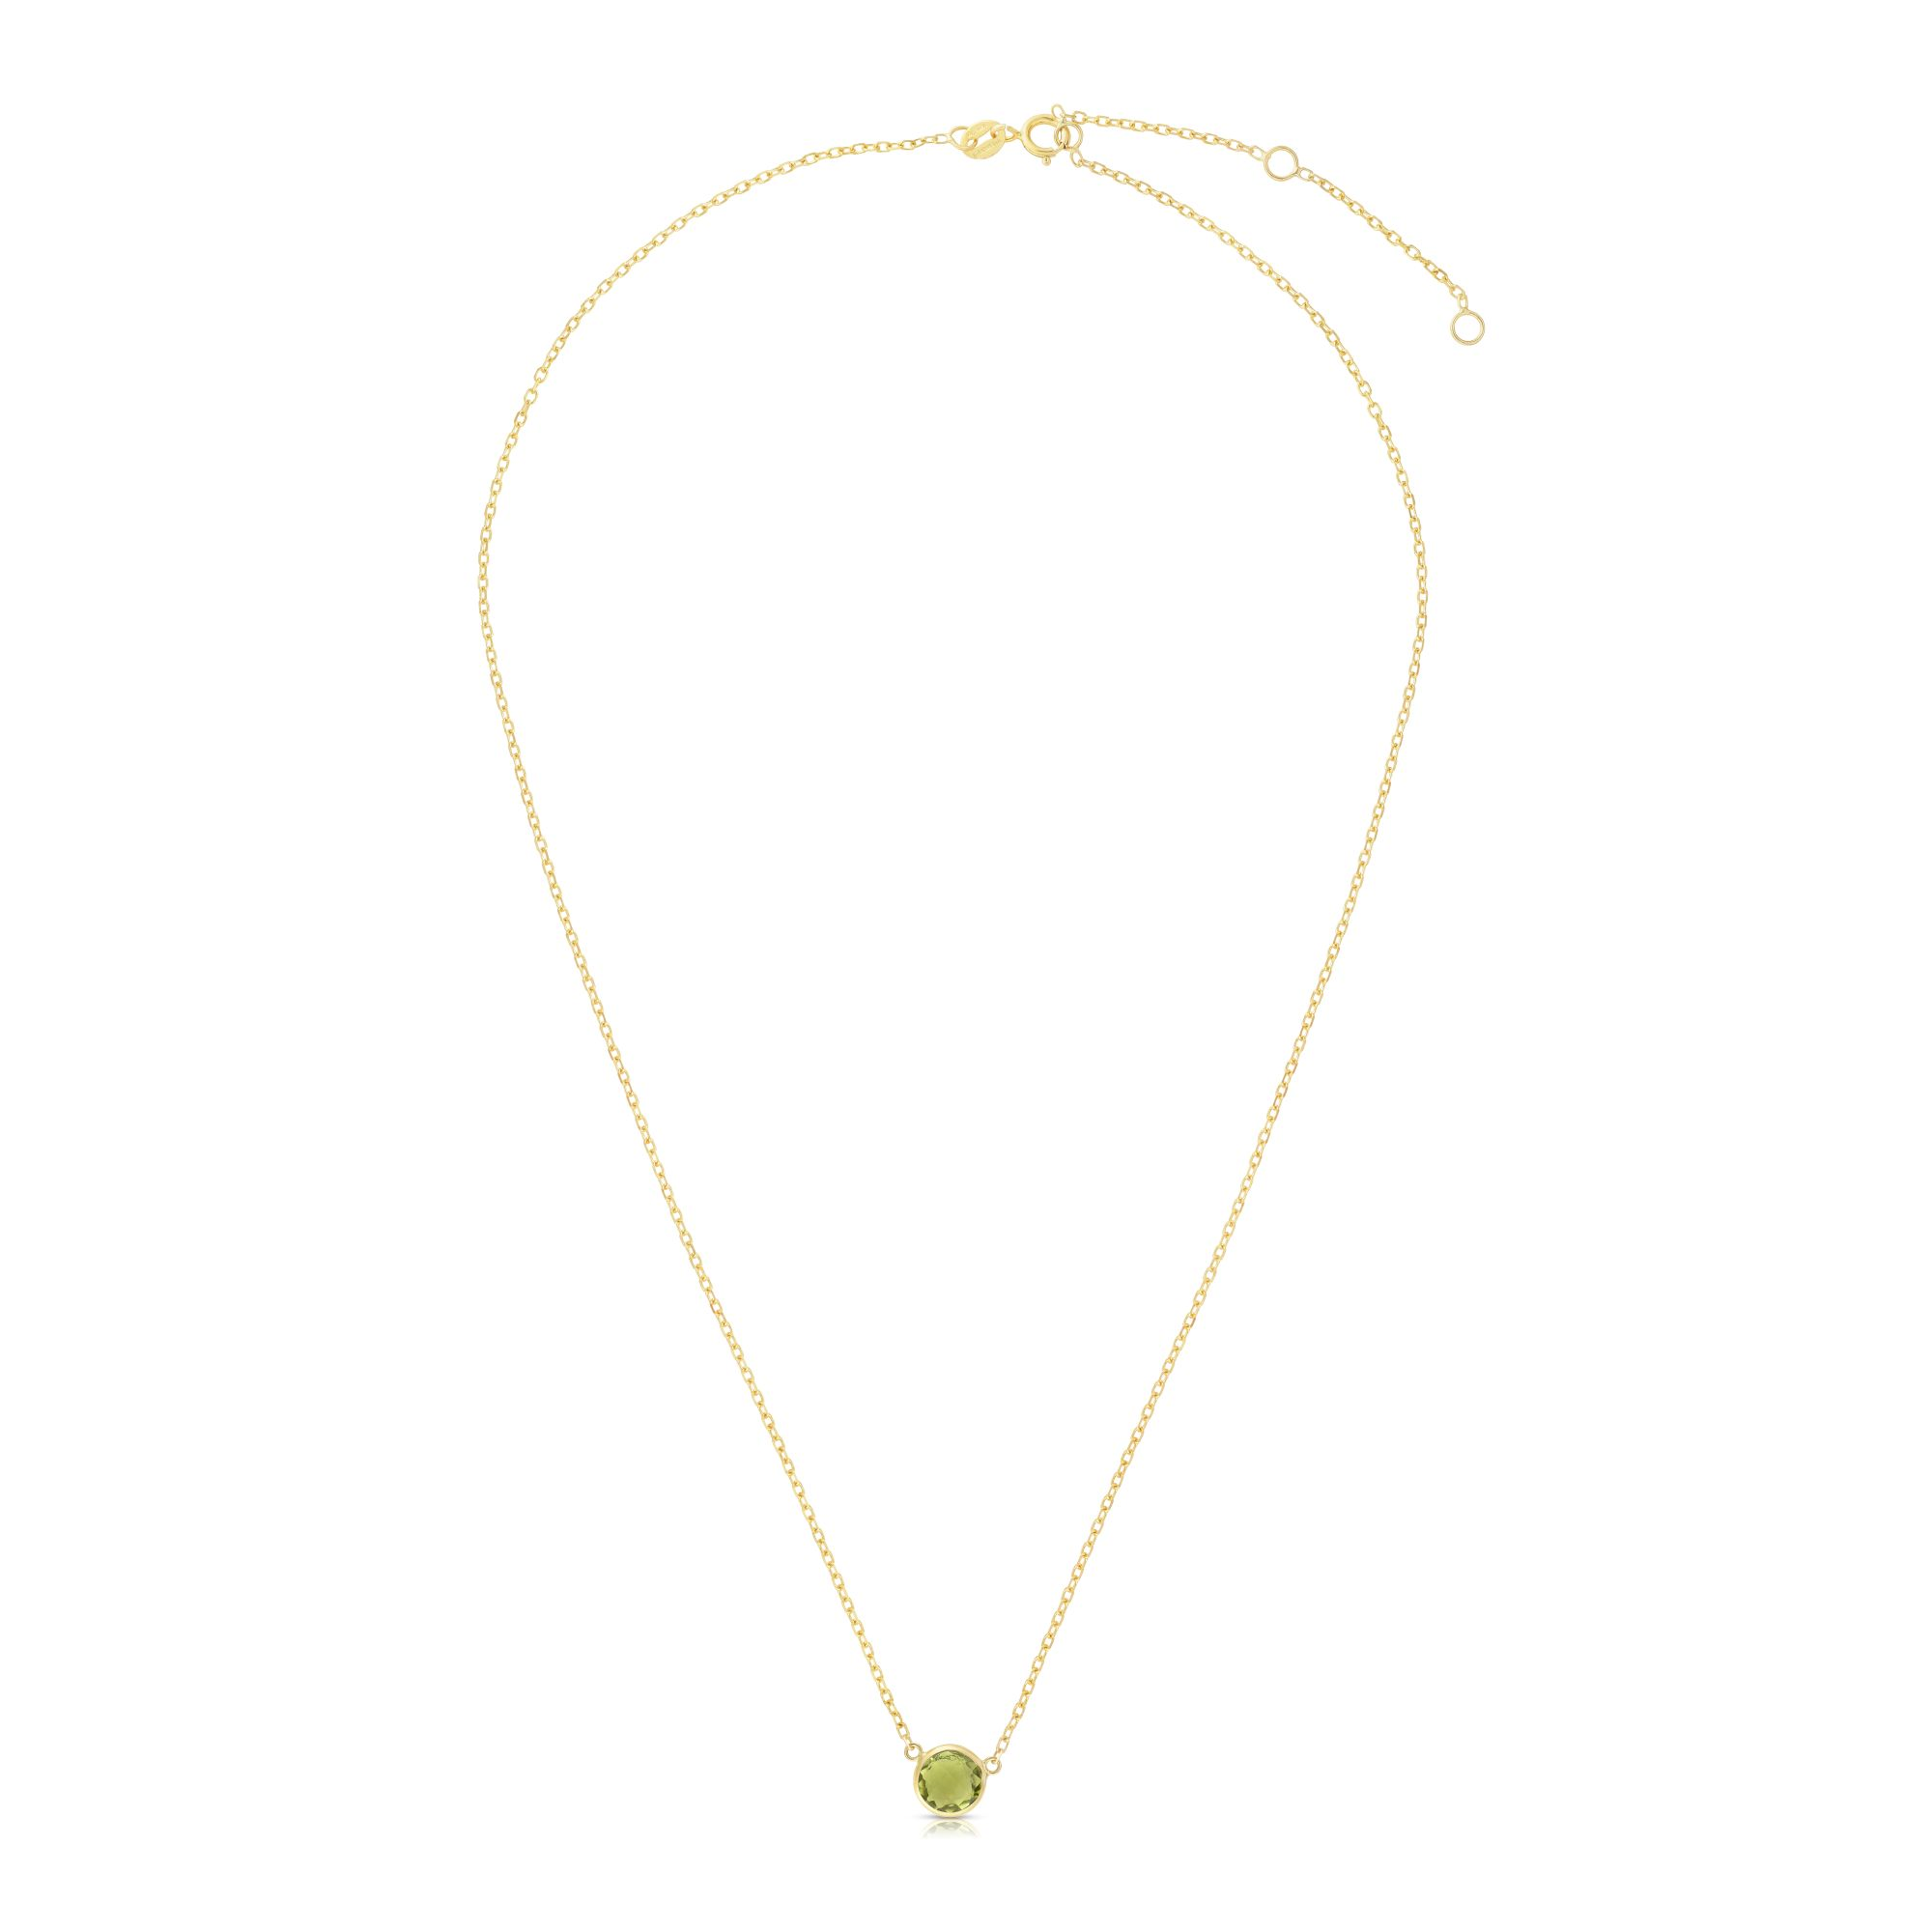 14kt Gold 17 inches Yellow Finish Extendable Colored Stone Necklace with Spring Ring Clasp with 0.9000ct 6mm Round Green Peridot